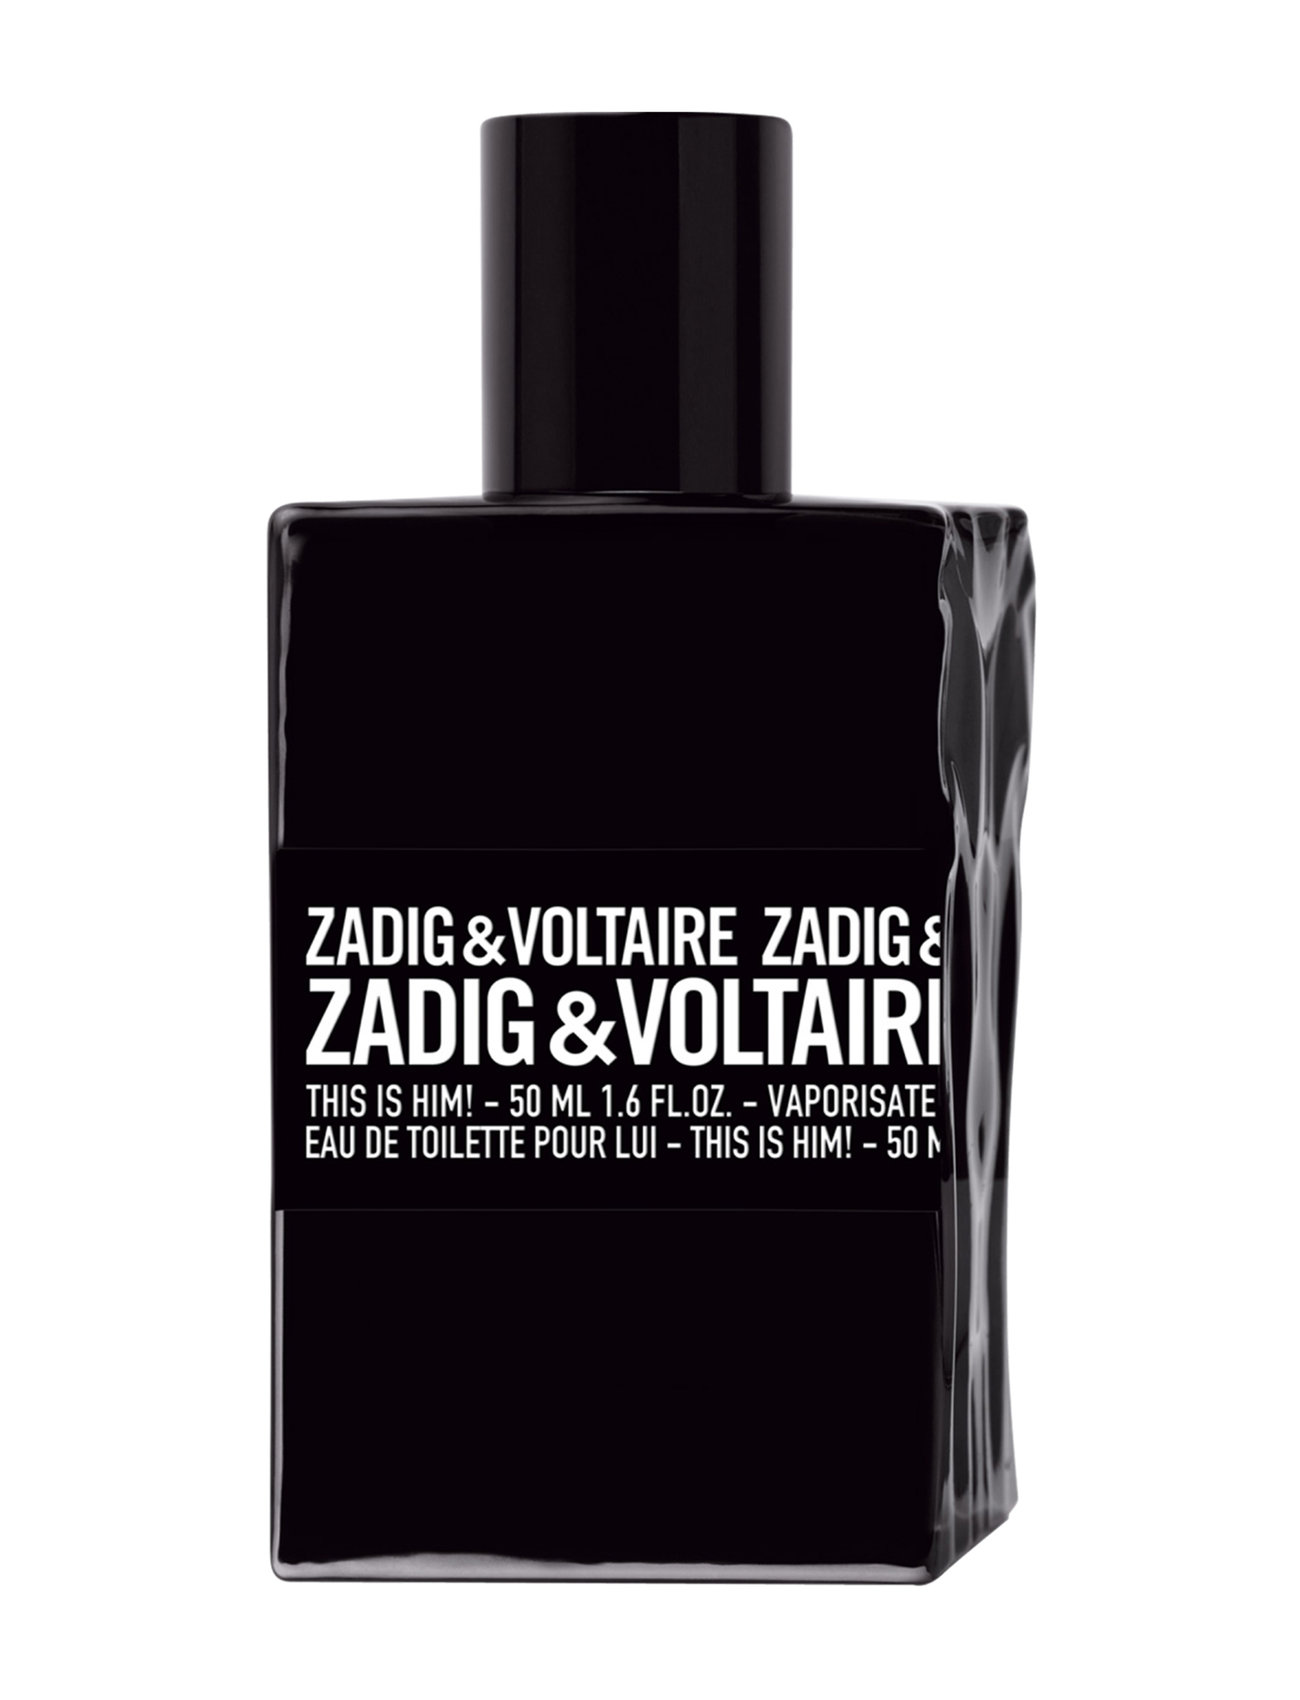 Zadig & voltaire this is him! eau d fra zadig & voltaire fragrance fra boozt.com dk